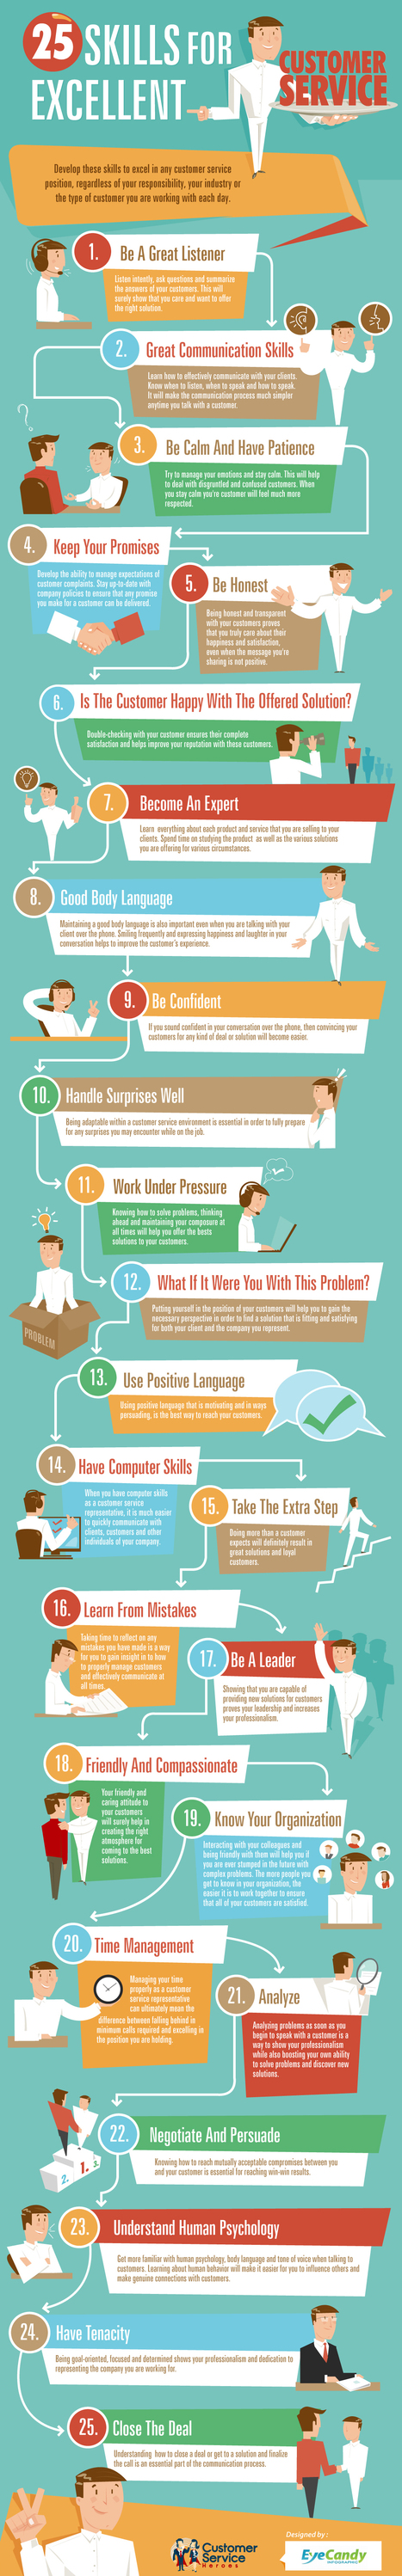 25 Skills Required For Excellent Customer Service (Infographic) | Beyond Marketing | Scoop.it